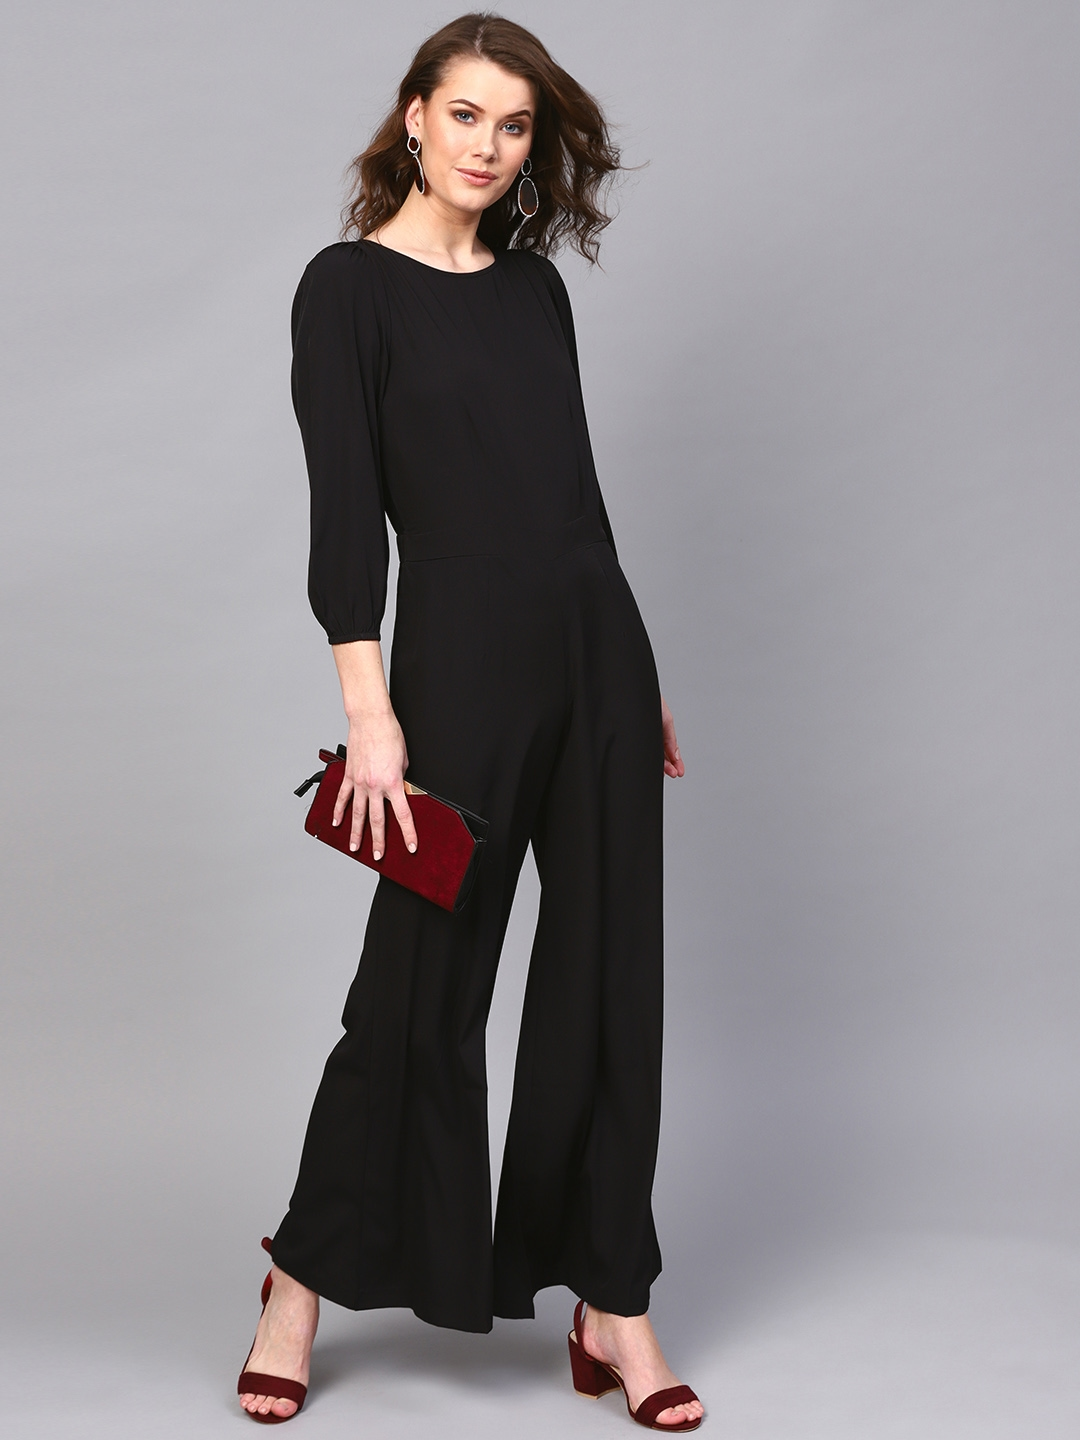 2e5f82763f7 Buy SASSAFRAS Black Solid Basic Jumpsuit - Jumpsuit for Women ...